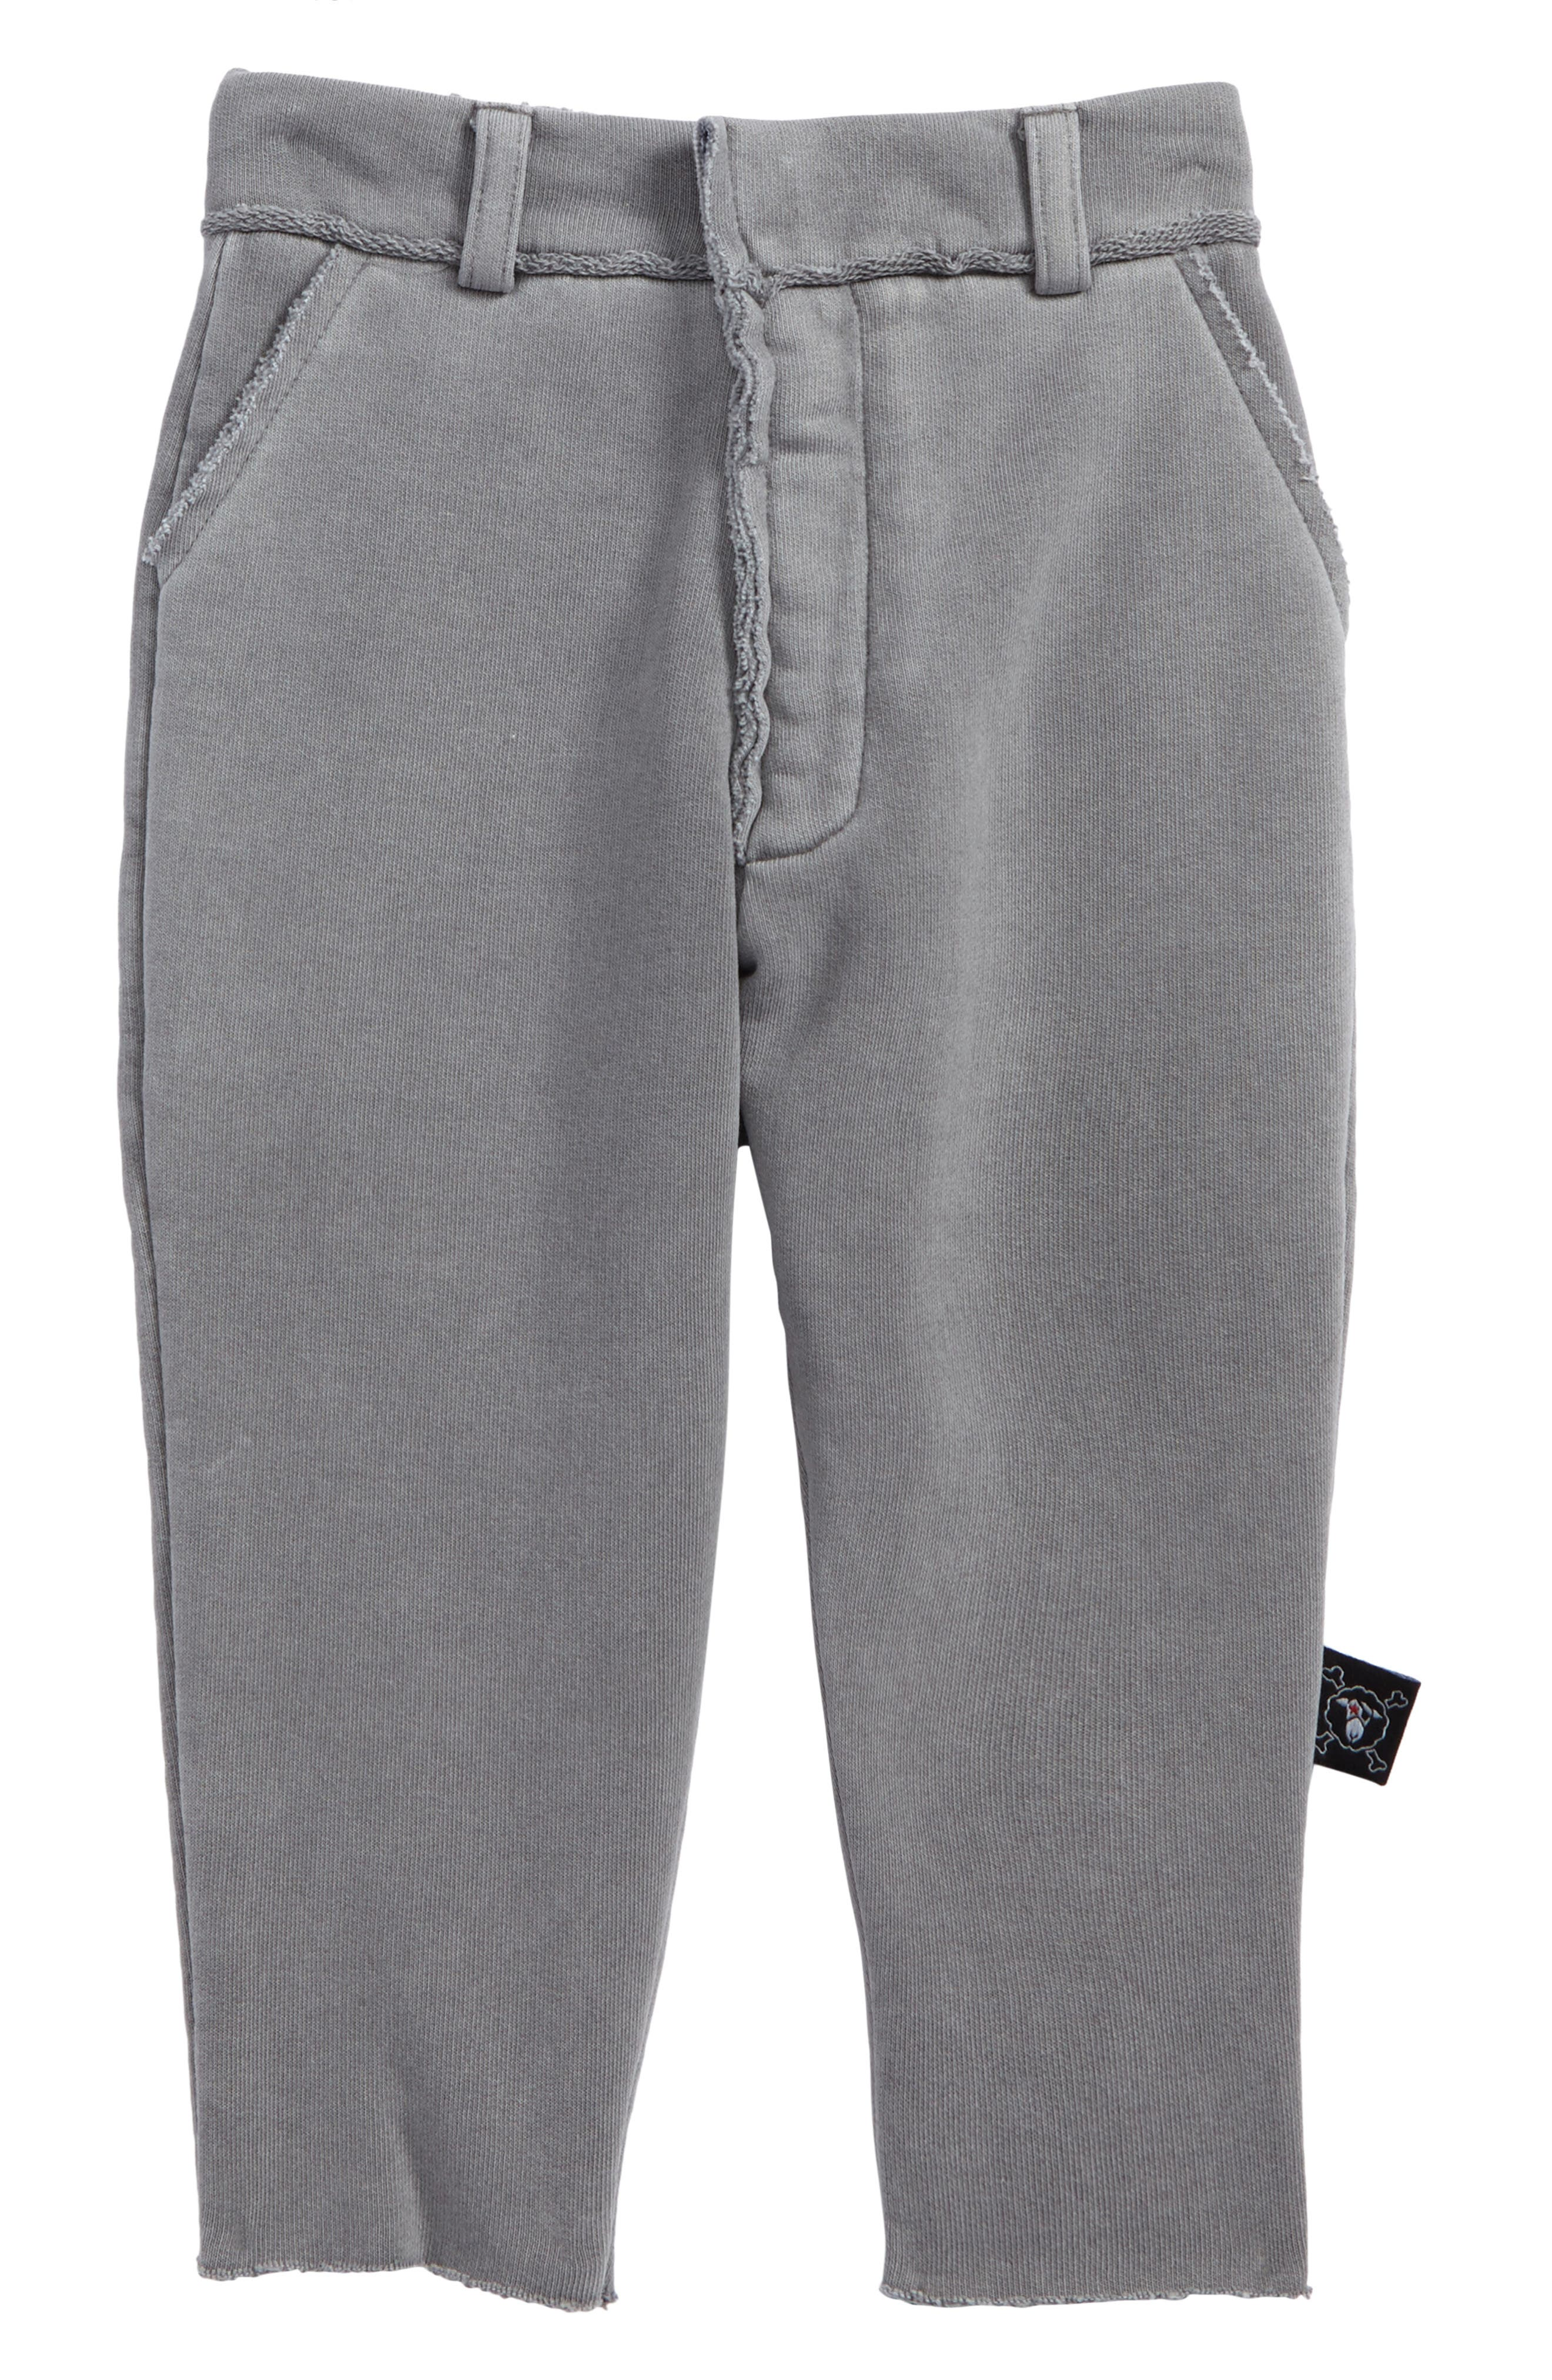 French Terry Pants,                         Main,                         color, Dyed Grey